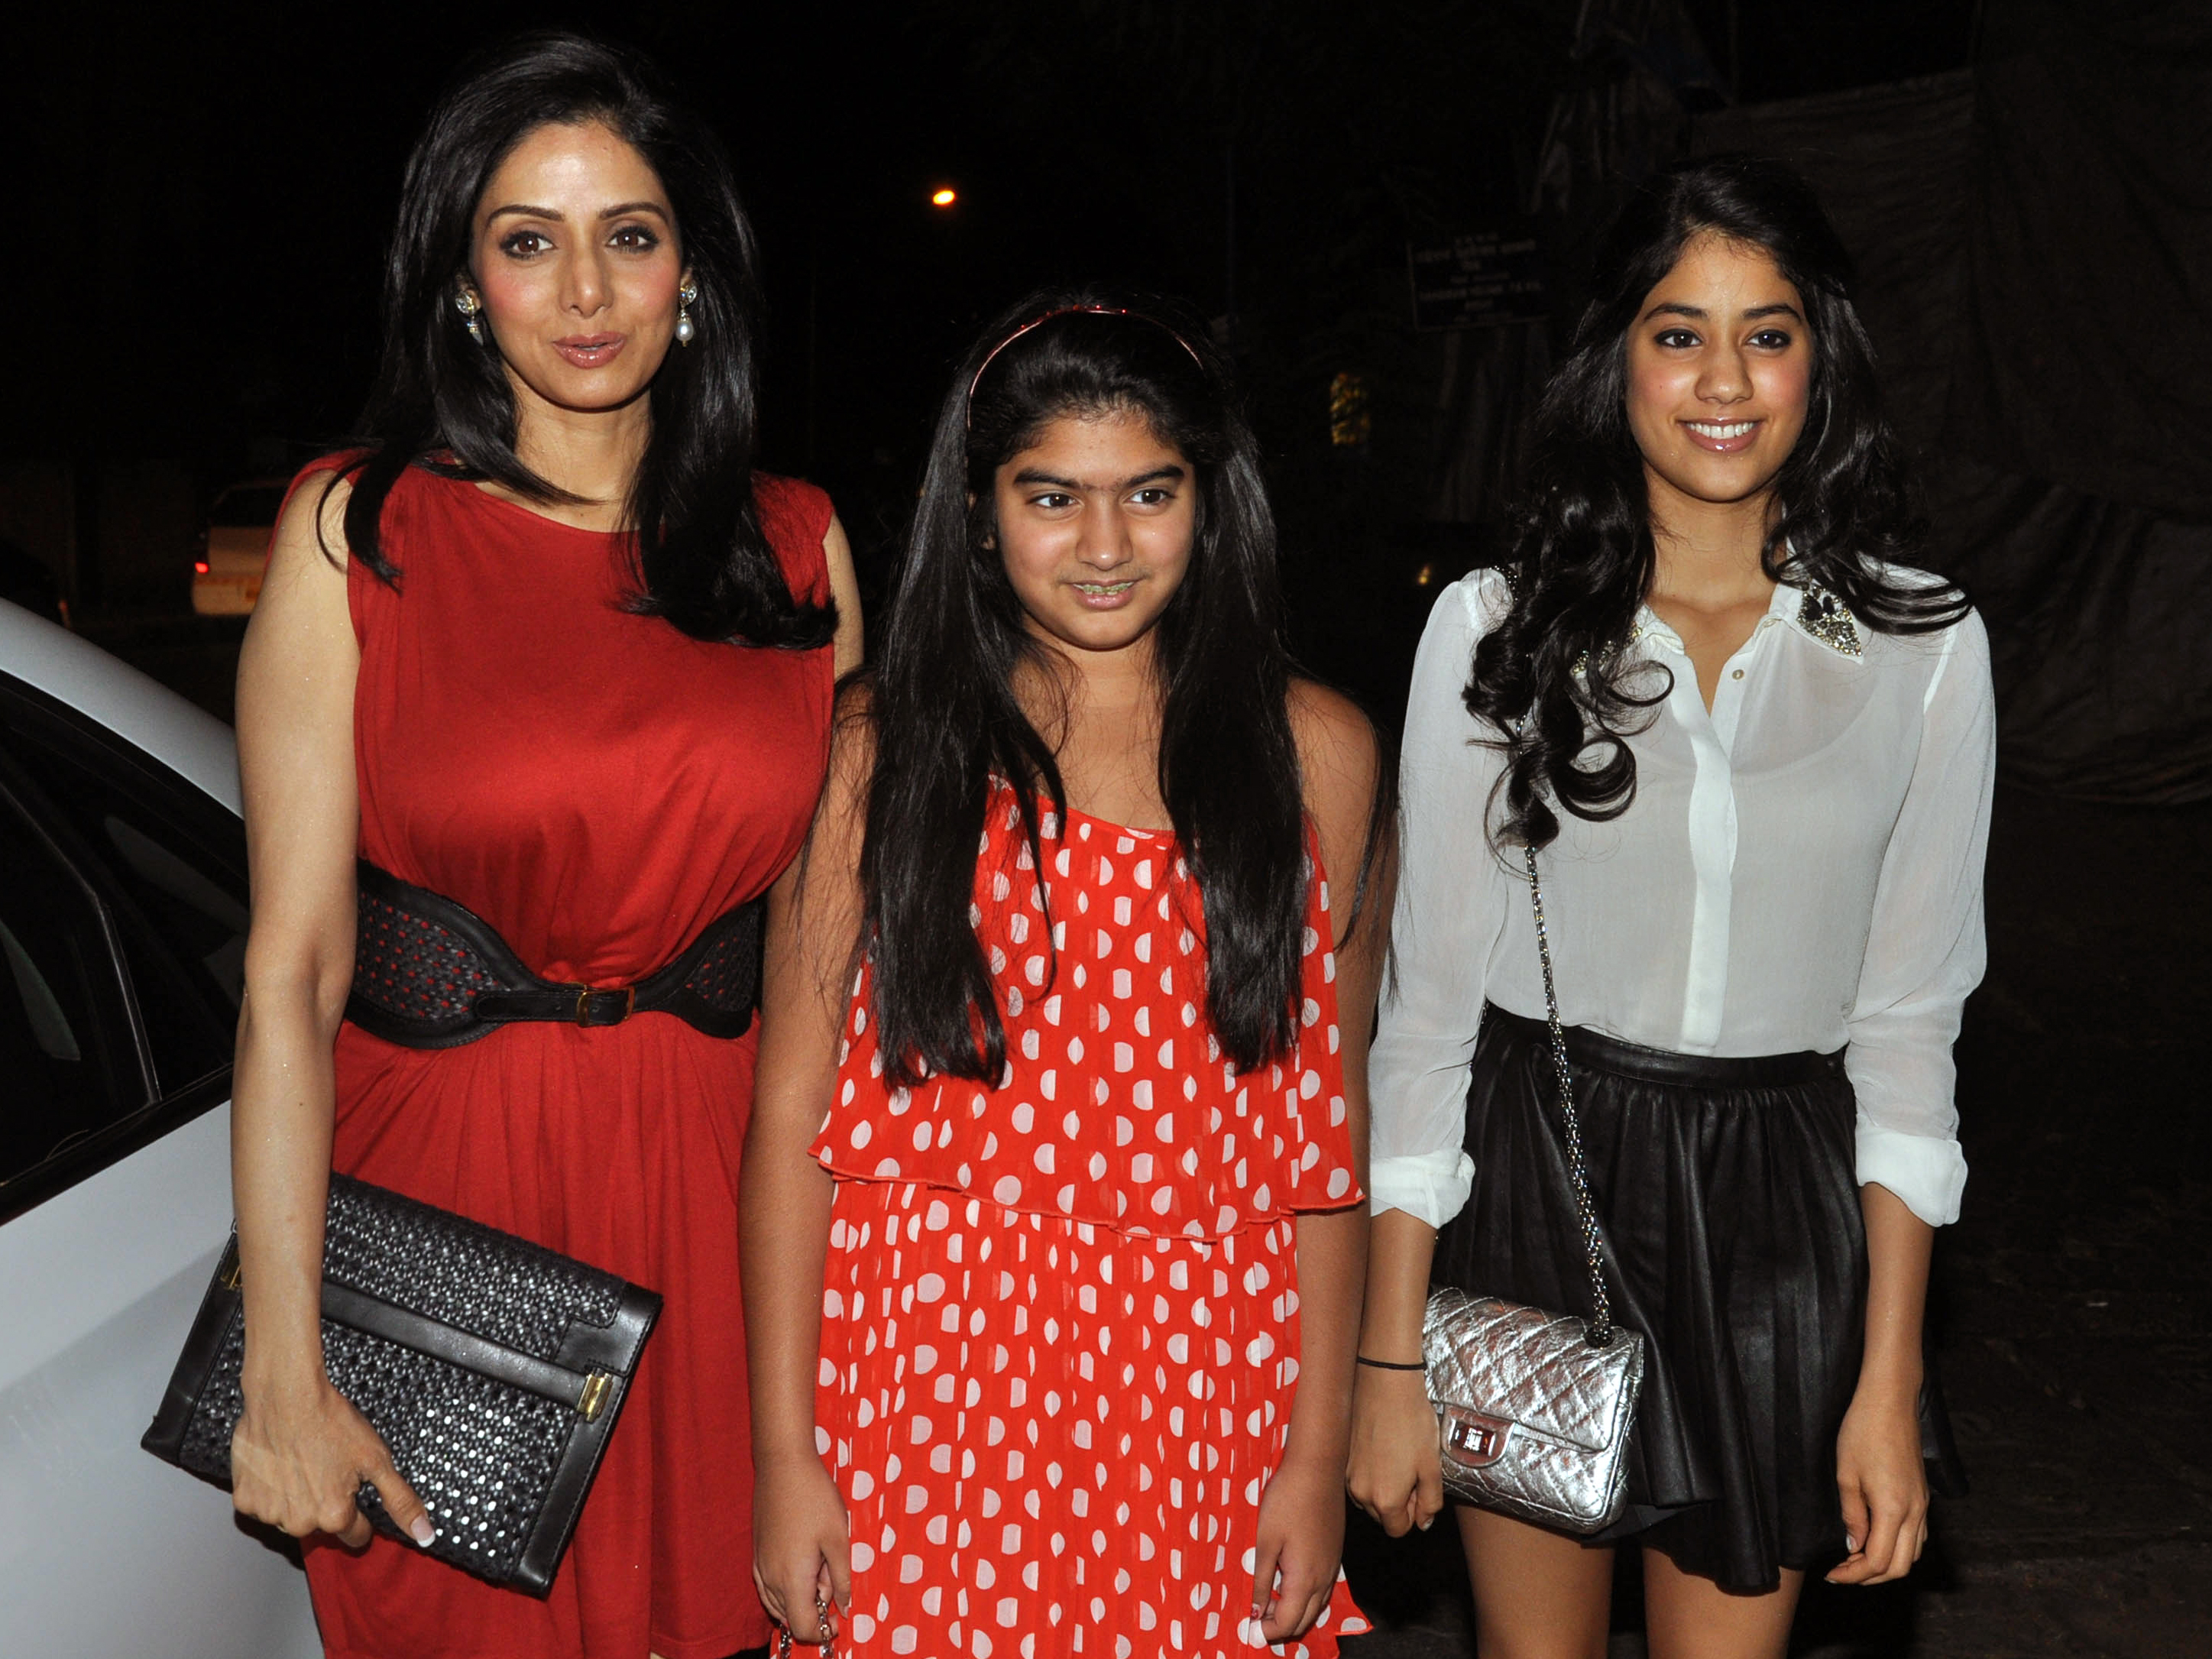 Sridevi Attends People Bagazine Bash With Her Daughters